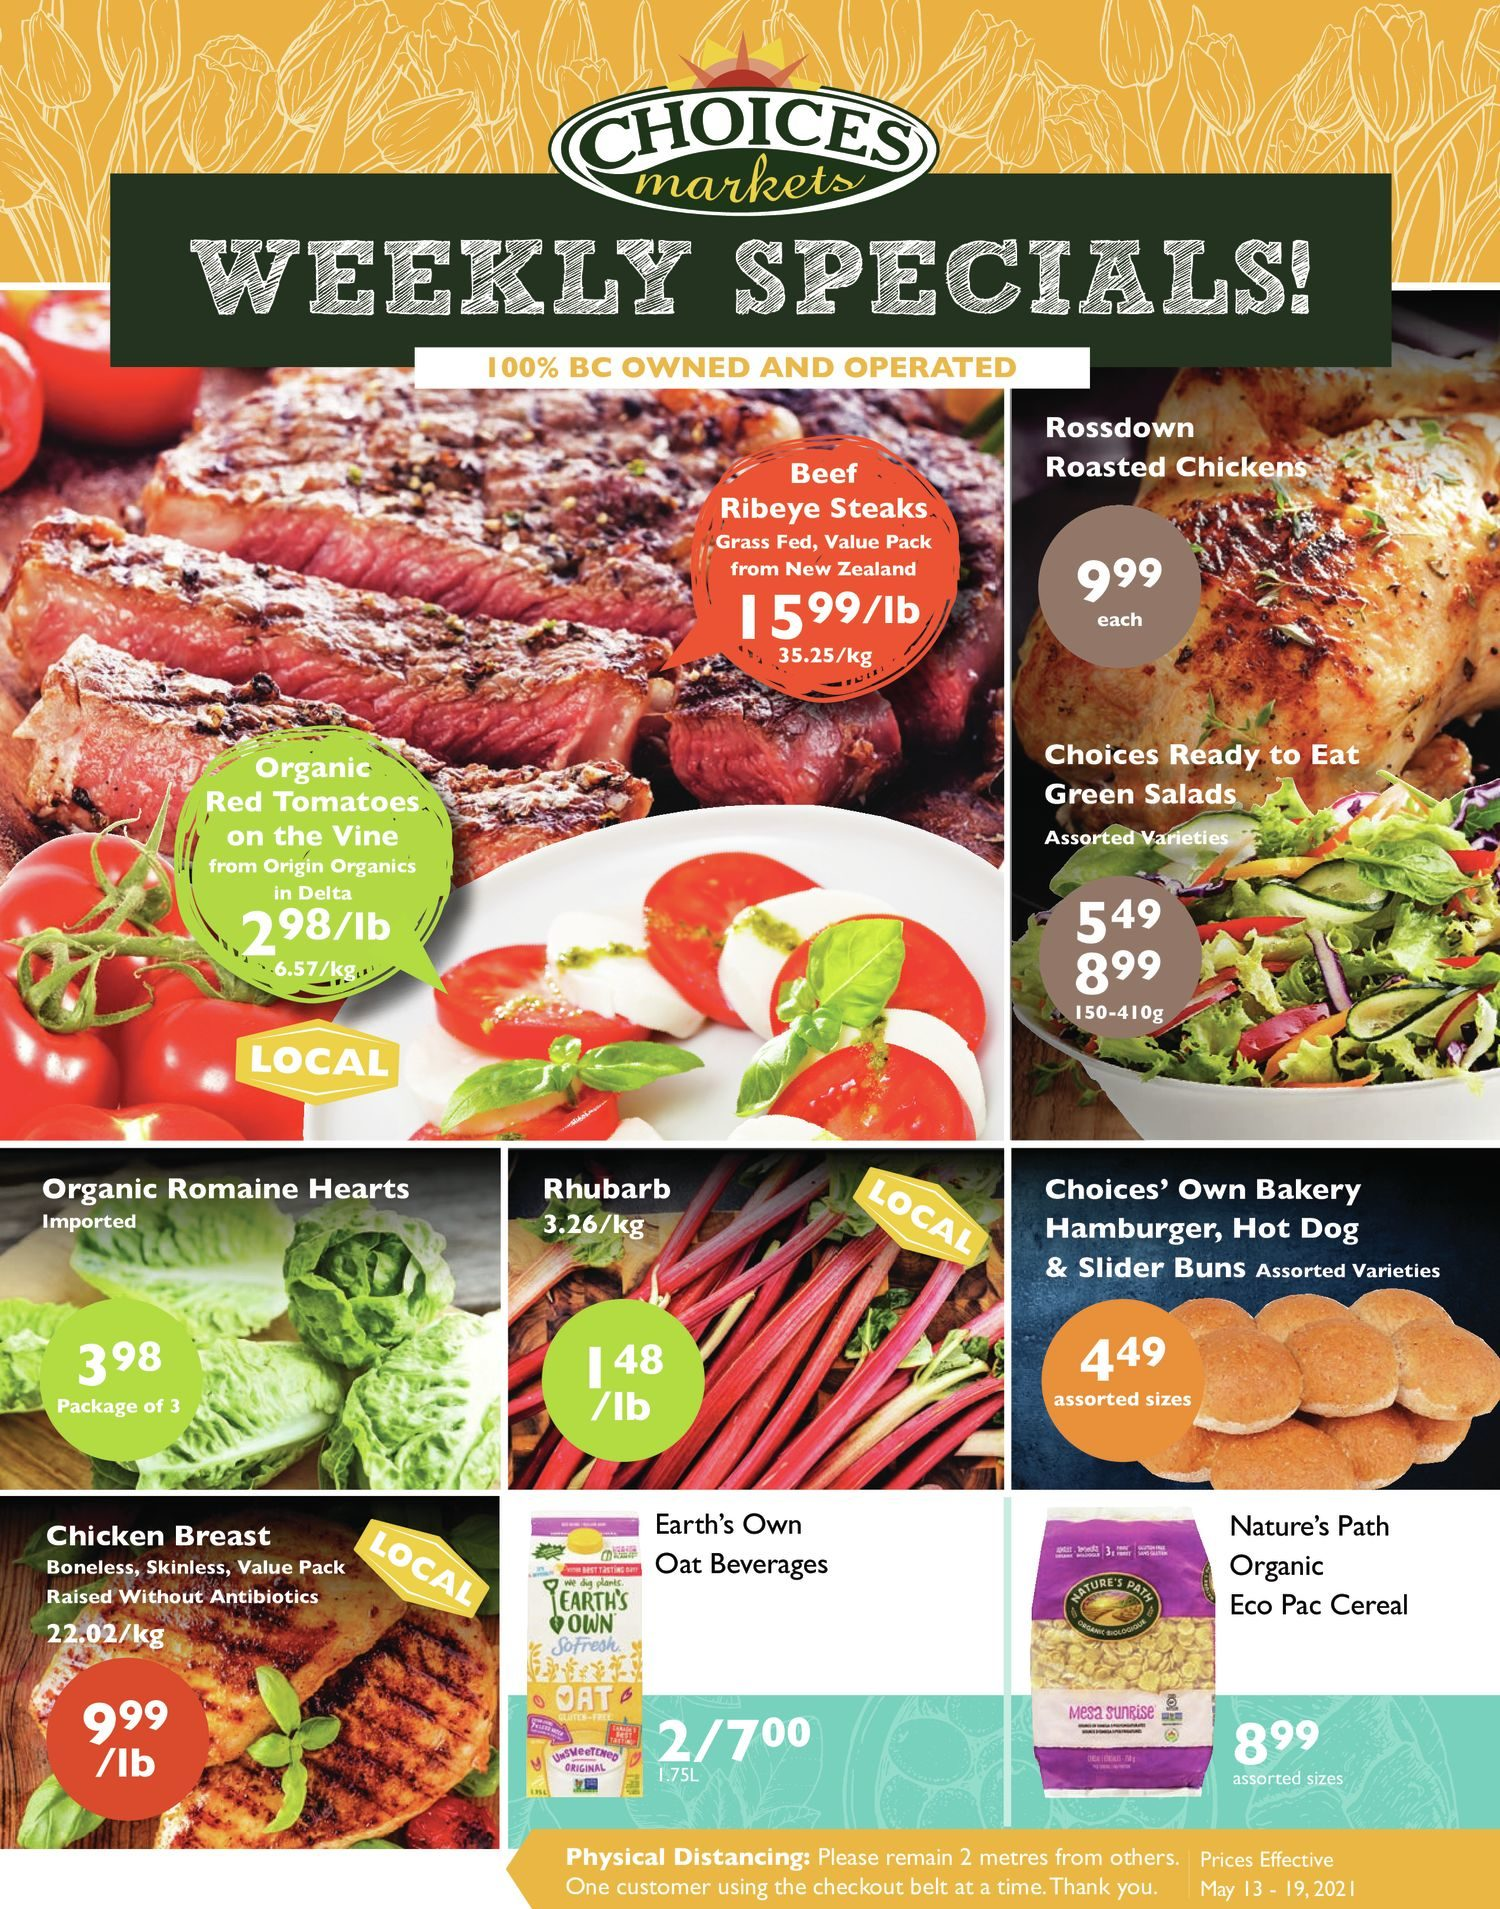 Choices Markets - Weekly Flyer Specials